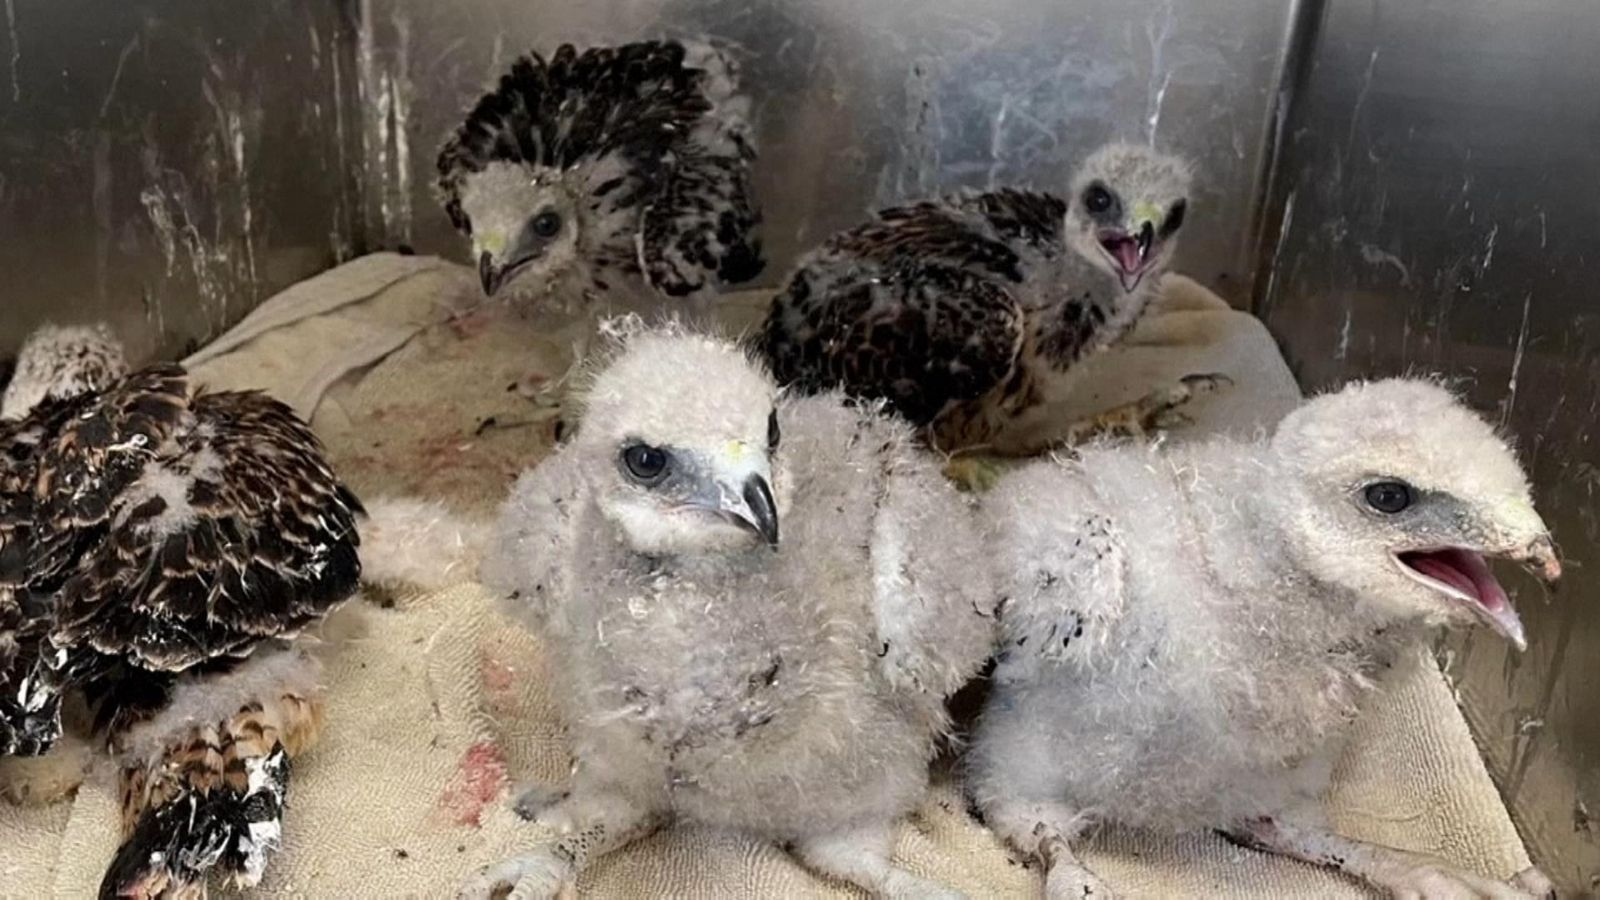 US heatwave: Baby birds injured fleeing nests to escape record conditions